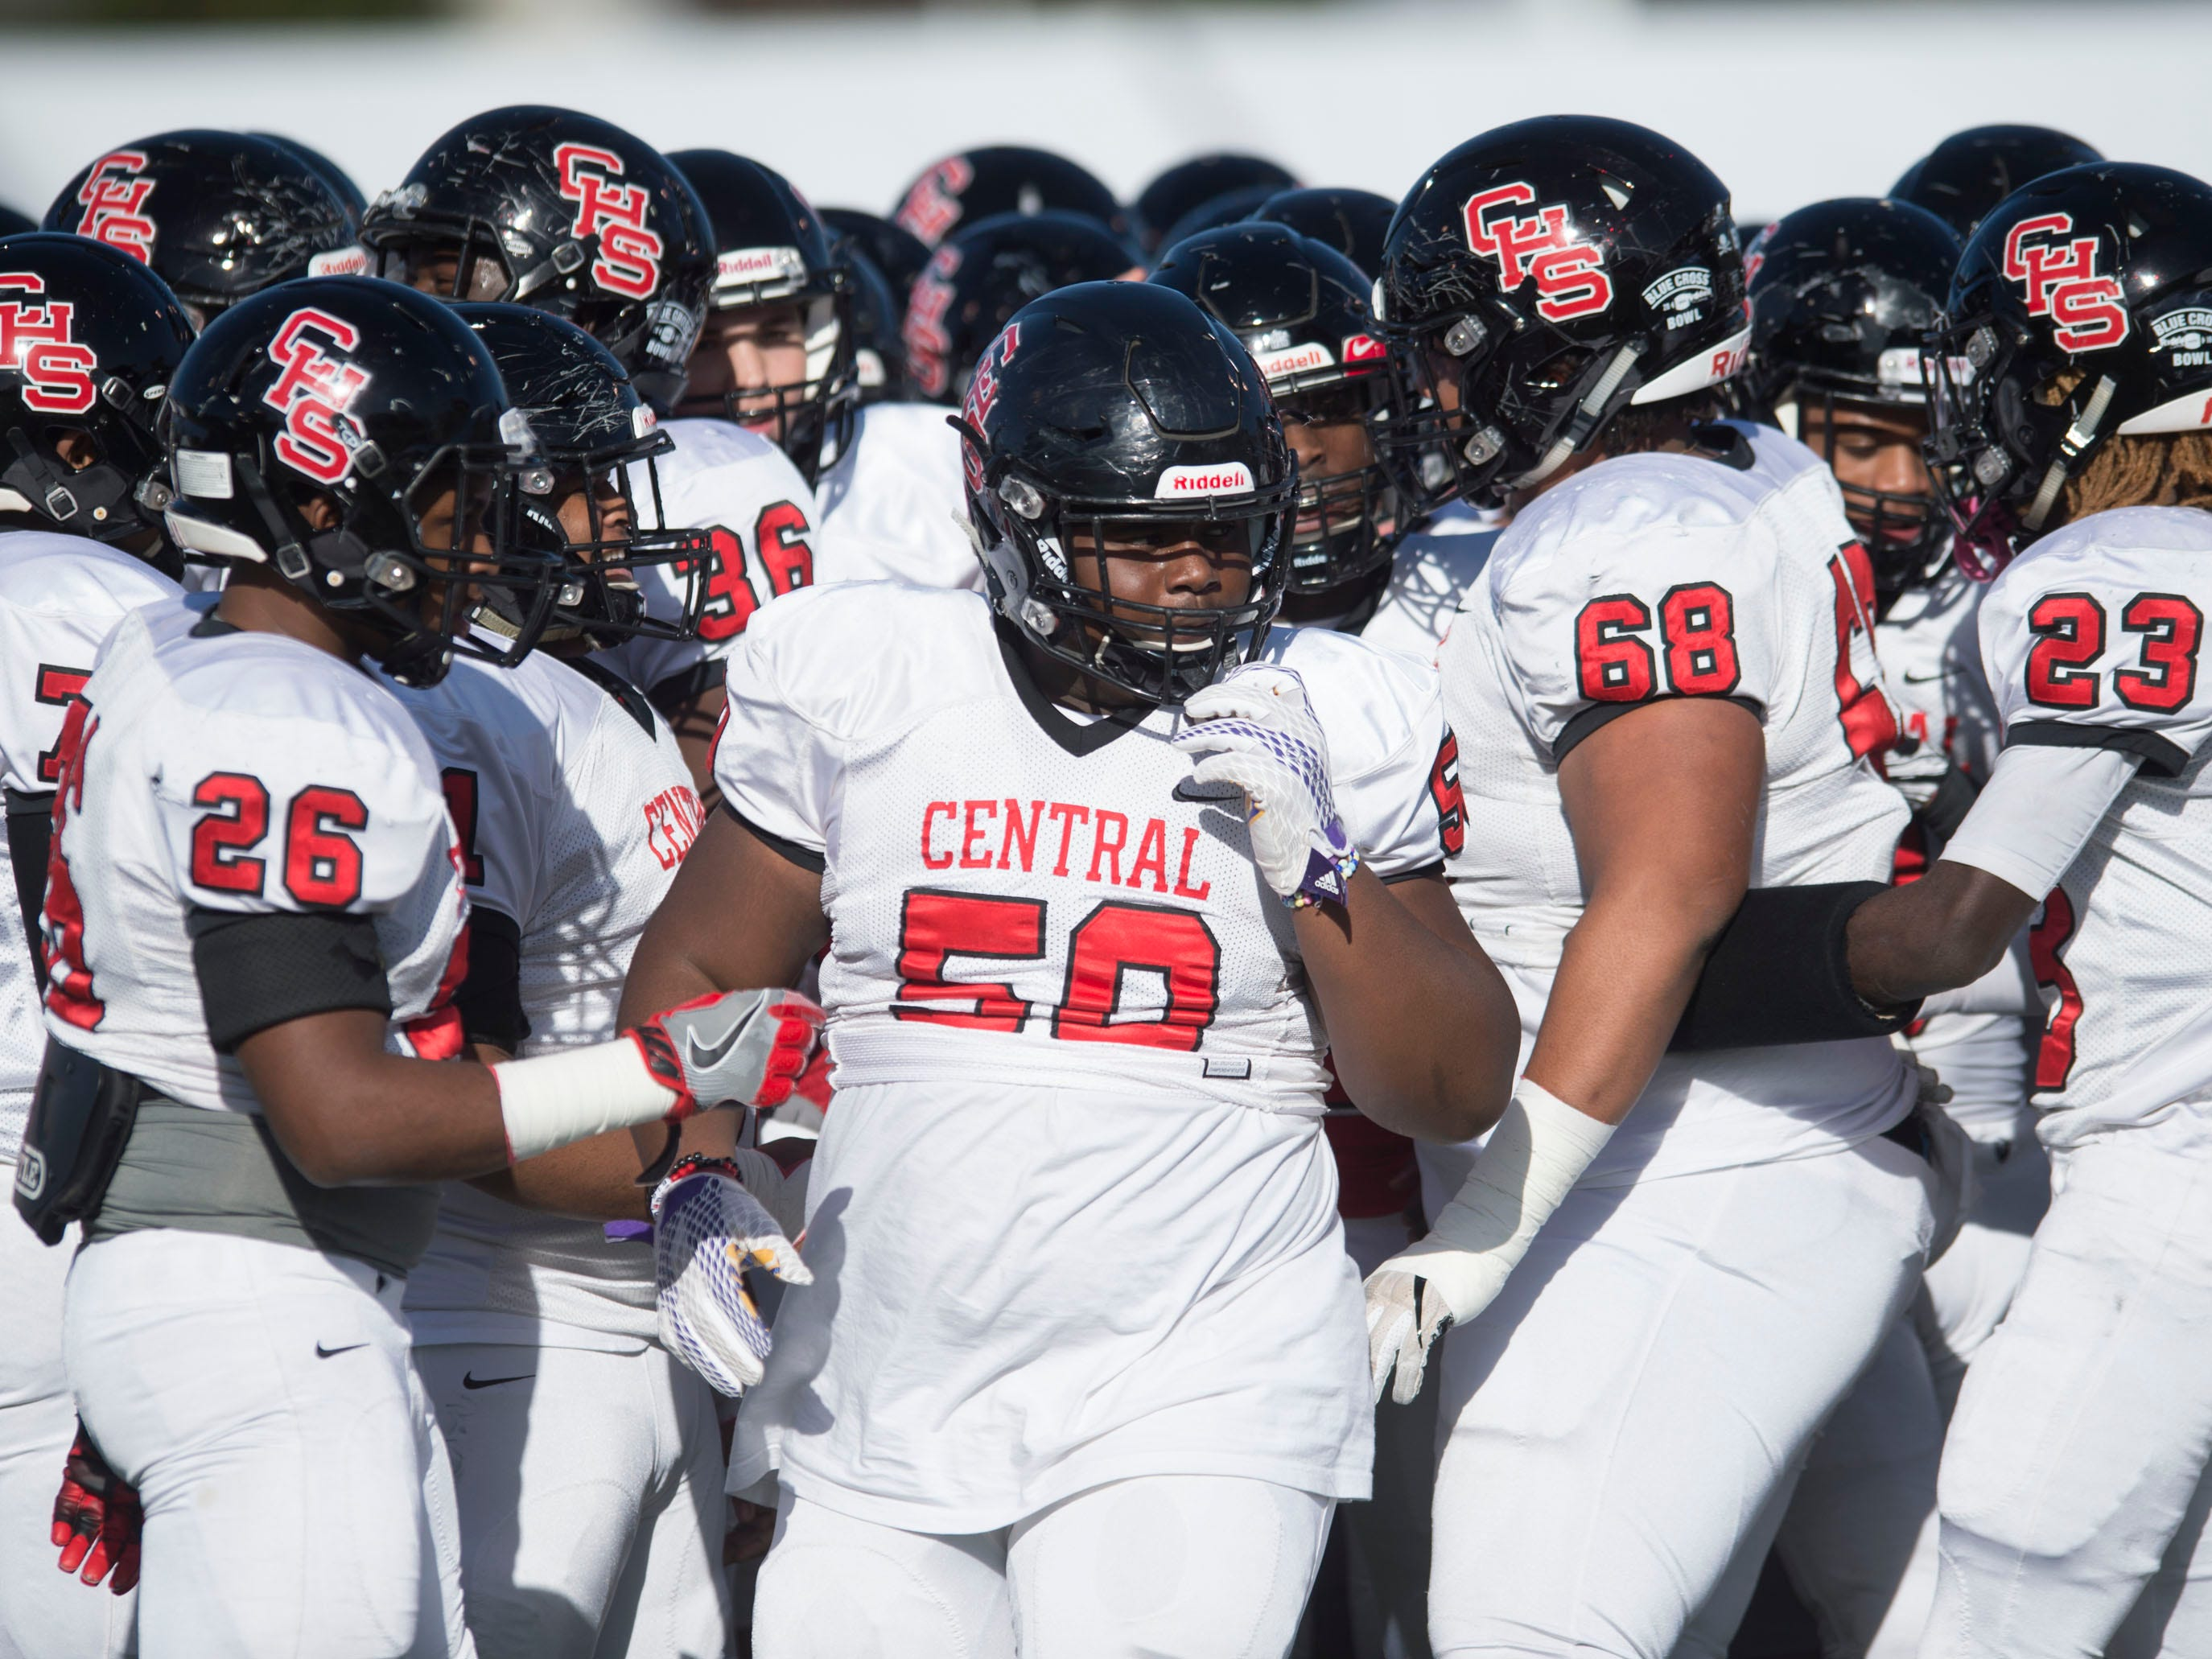 Knoxville Central warming up before the start of the game against Henry County in the Class 5A BlueCross Bowl at Tucker Stadium on Sunday, December 2, 2018.